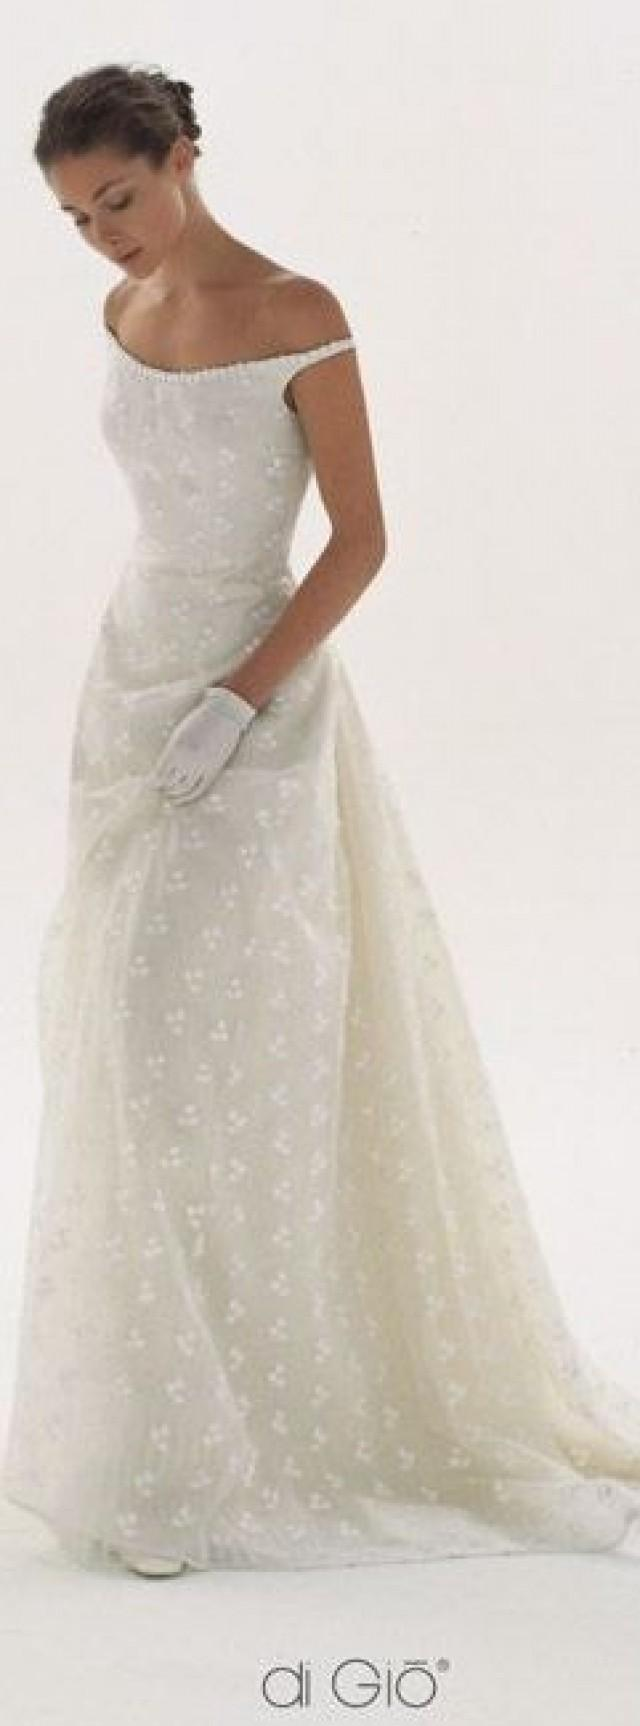 Dress say yes to the dress 2168665 weddbook for Le spose di gio wedding dress